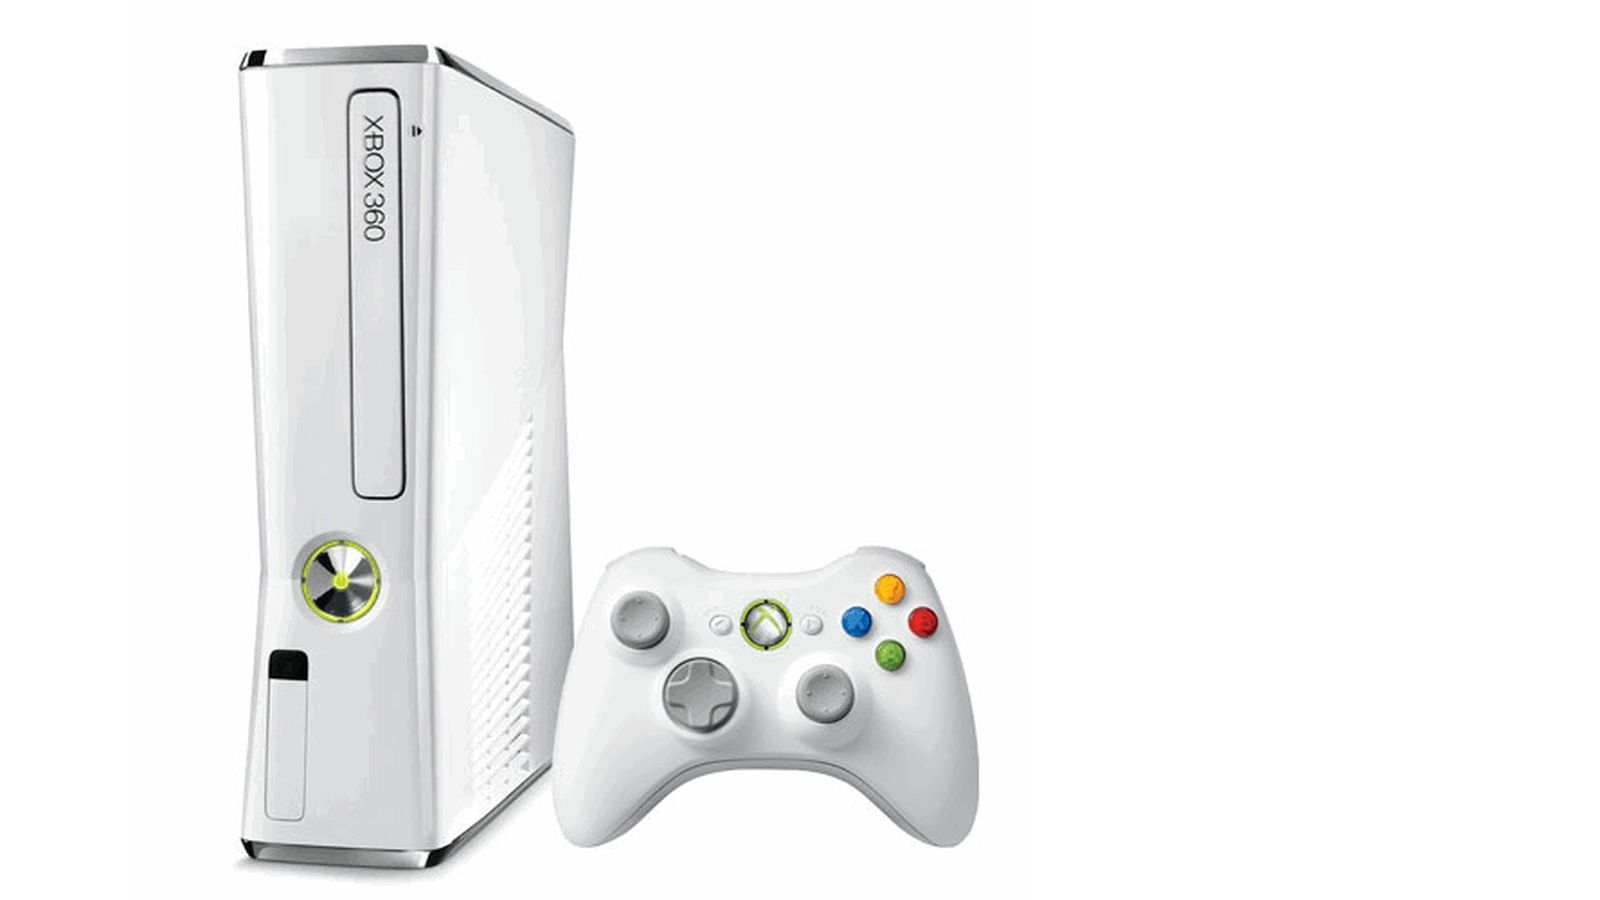 White Xbox 360 listed for sale on UK retailer's website ...